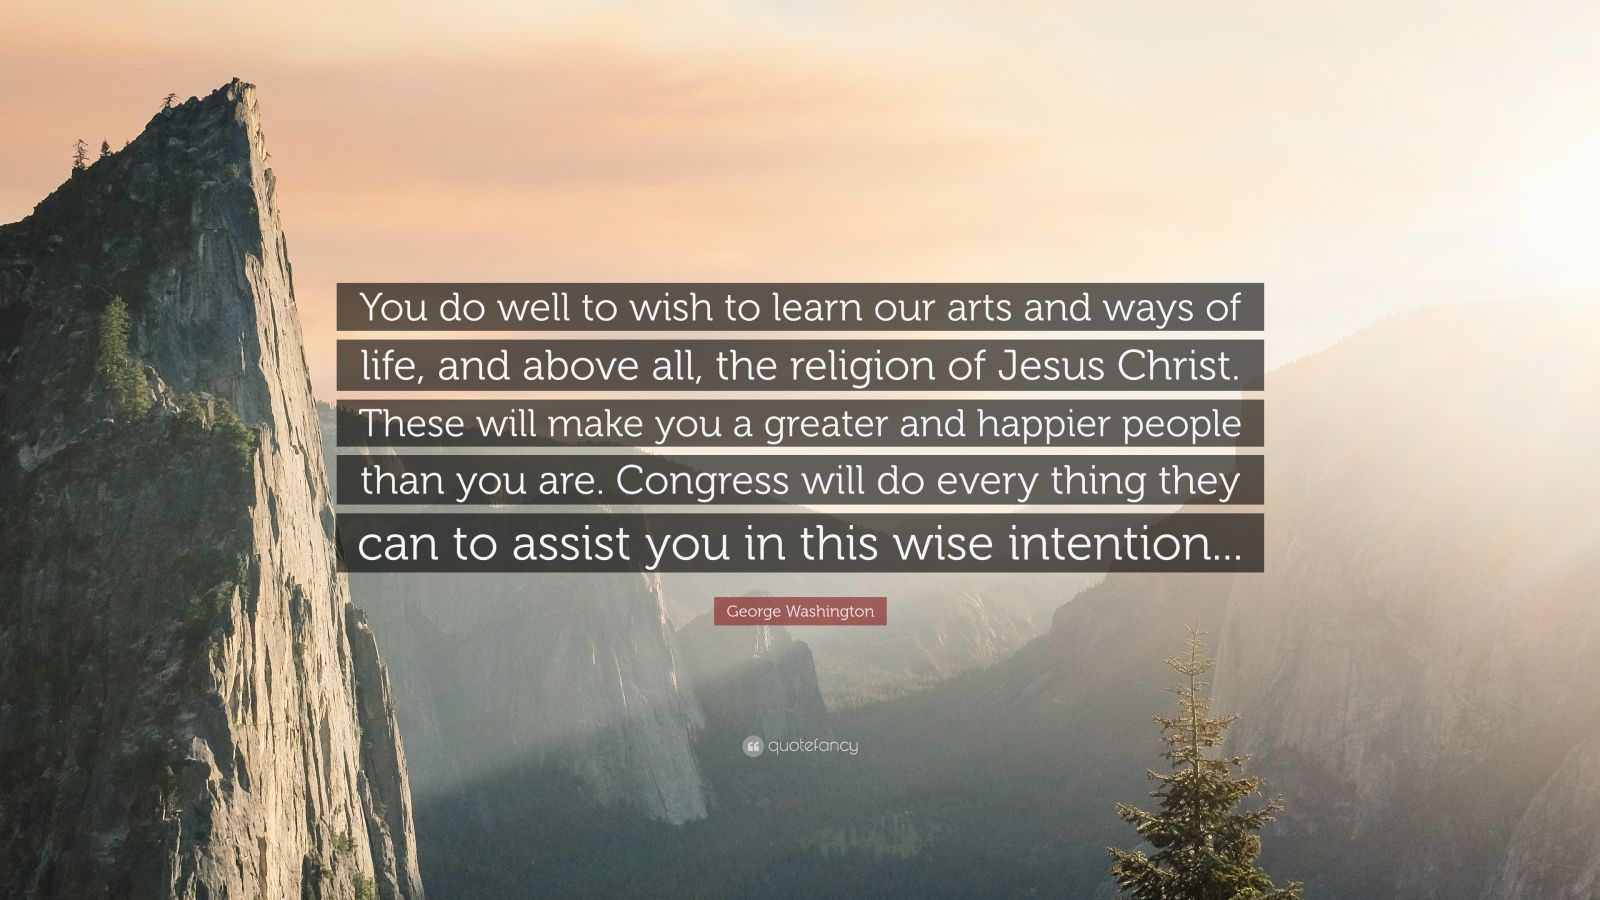 """George Washington Quote: """"You do well to wish to learn our arts and ways of life, and above all, the religion of Jesus Christ. These will make you a greater and happier people than you are. Congress will do every thing they can to assist you in this wise intention..."""""""